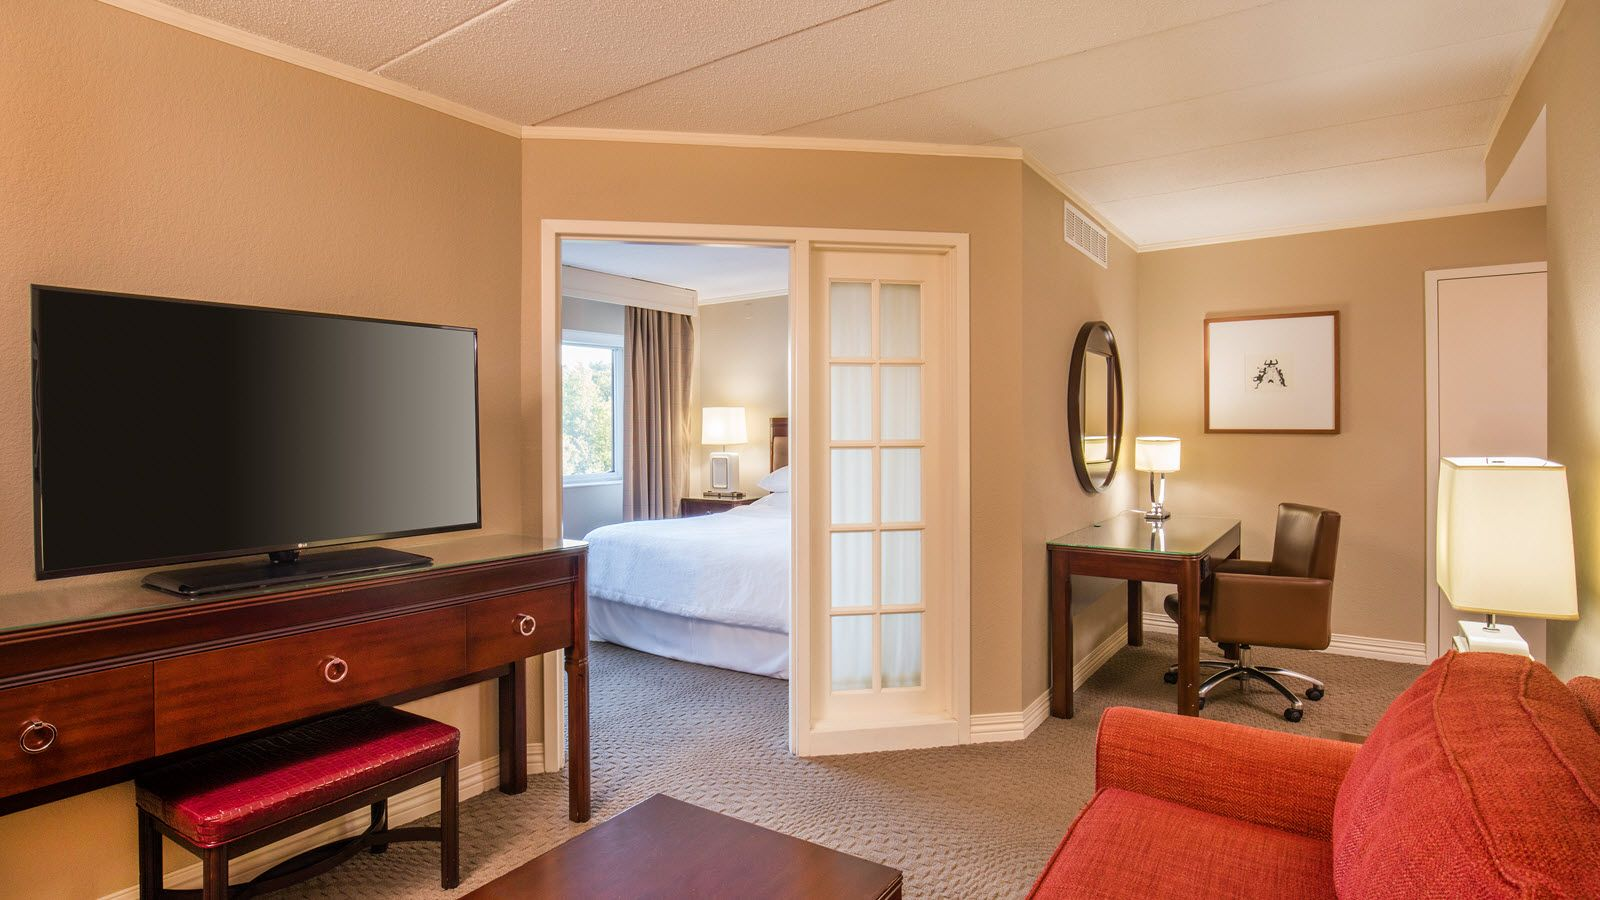 Sheraton Framingham Hotel & Conference Center - Renovation